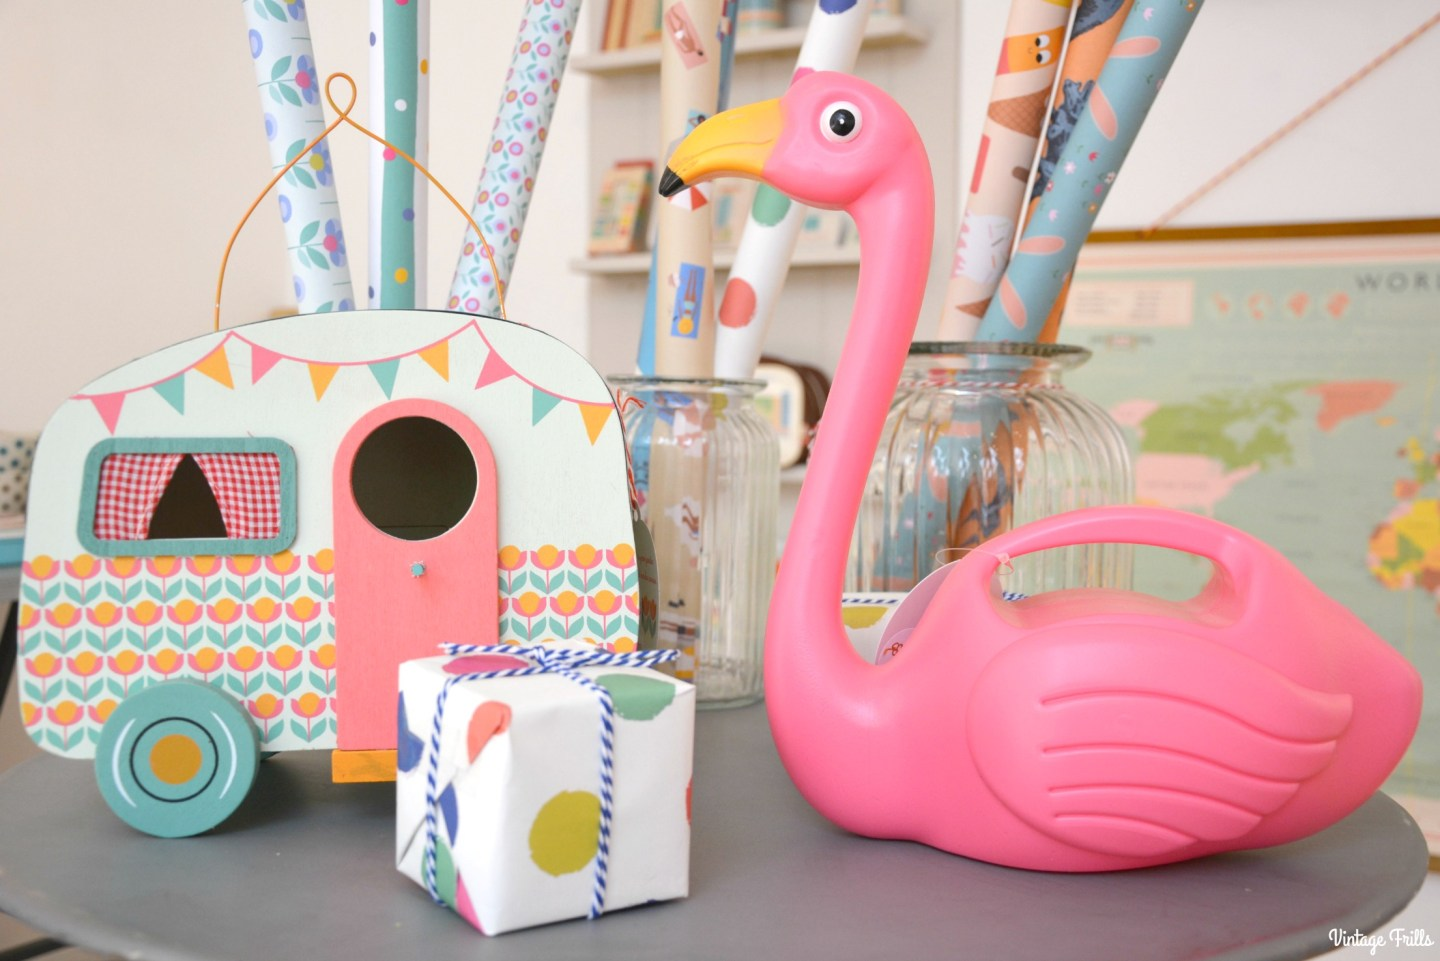 dot-com-gift-shop-christmas-flamingo-watering-can